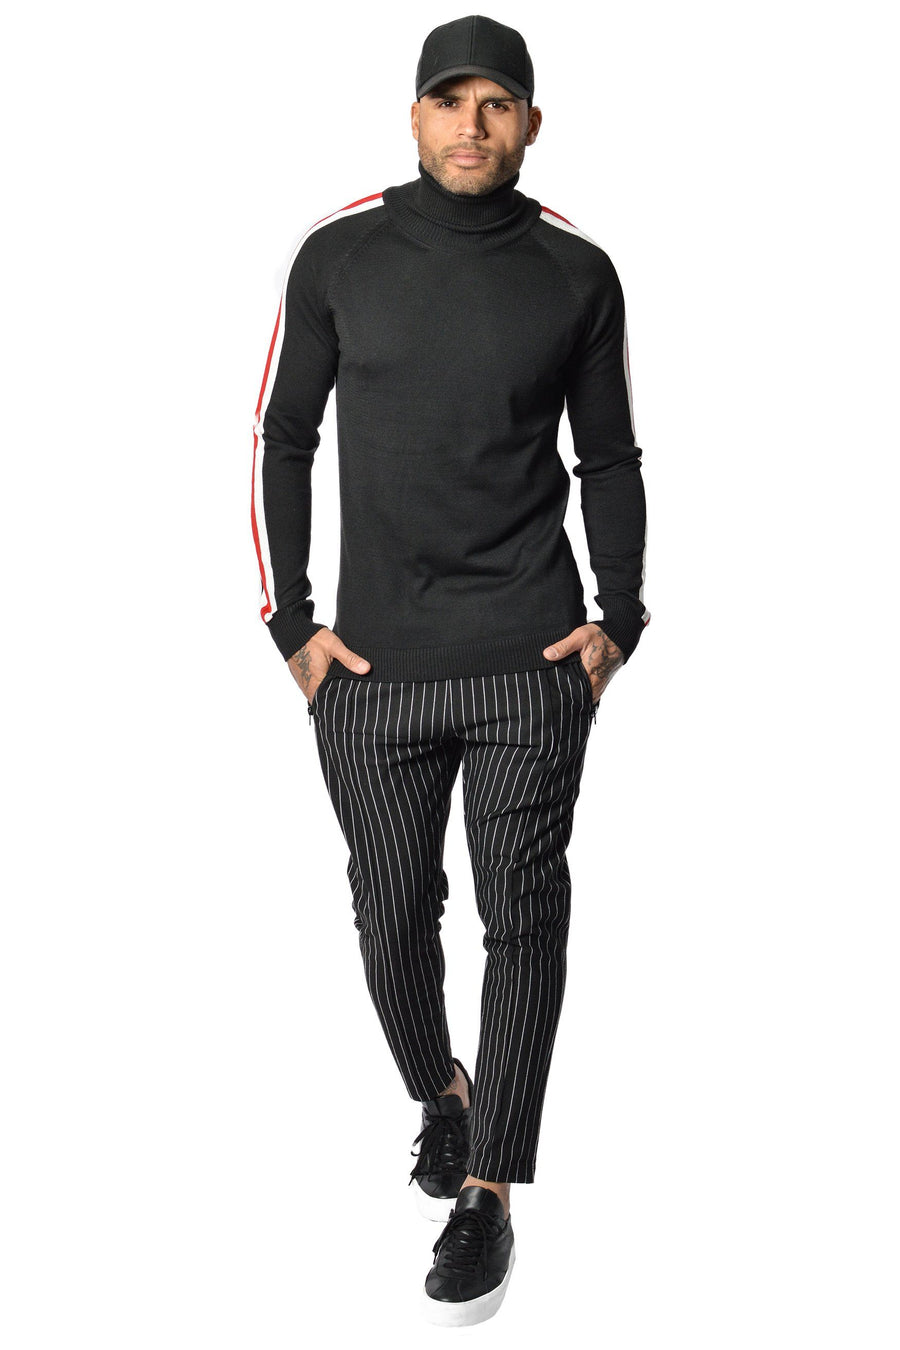 PEGADOR - Lui Turtleneck Black Red/white - PEGADOR - Dominate the Hype